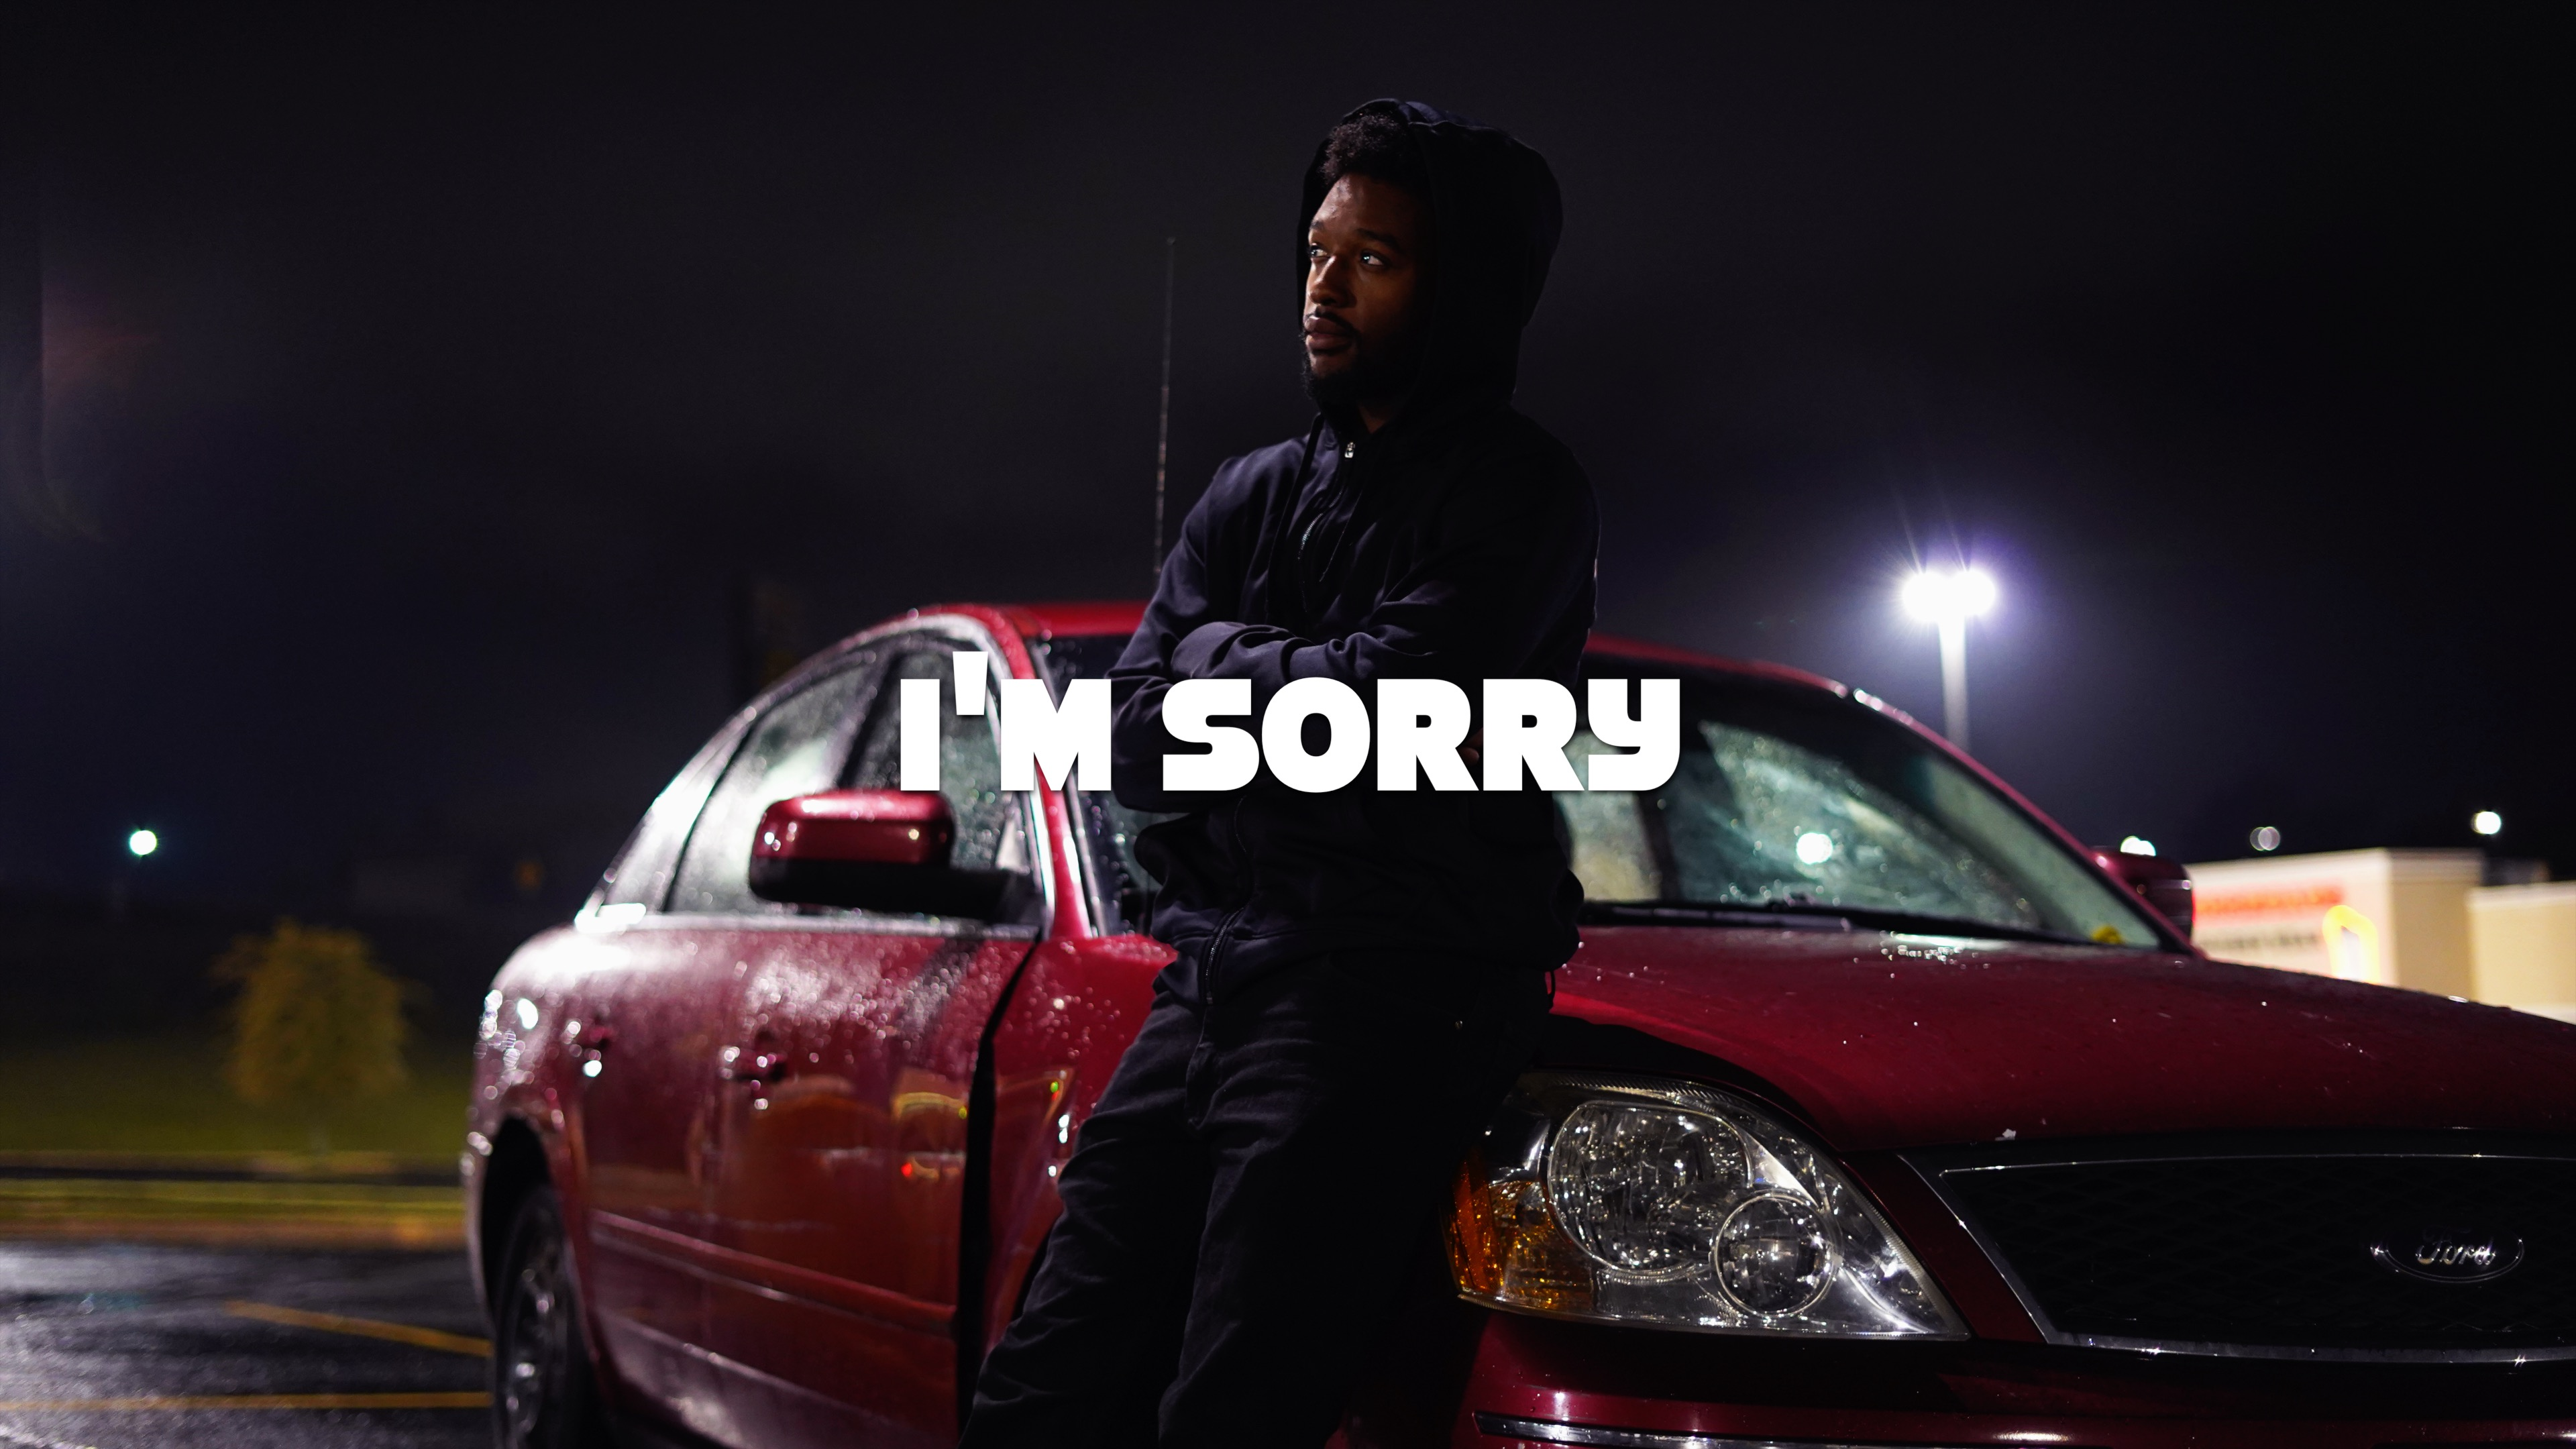 I'M SORRY, A Short Film